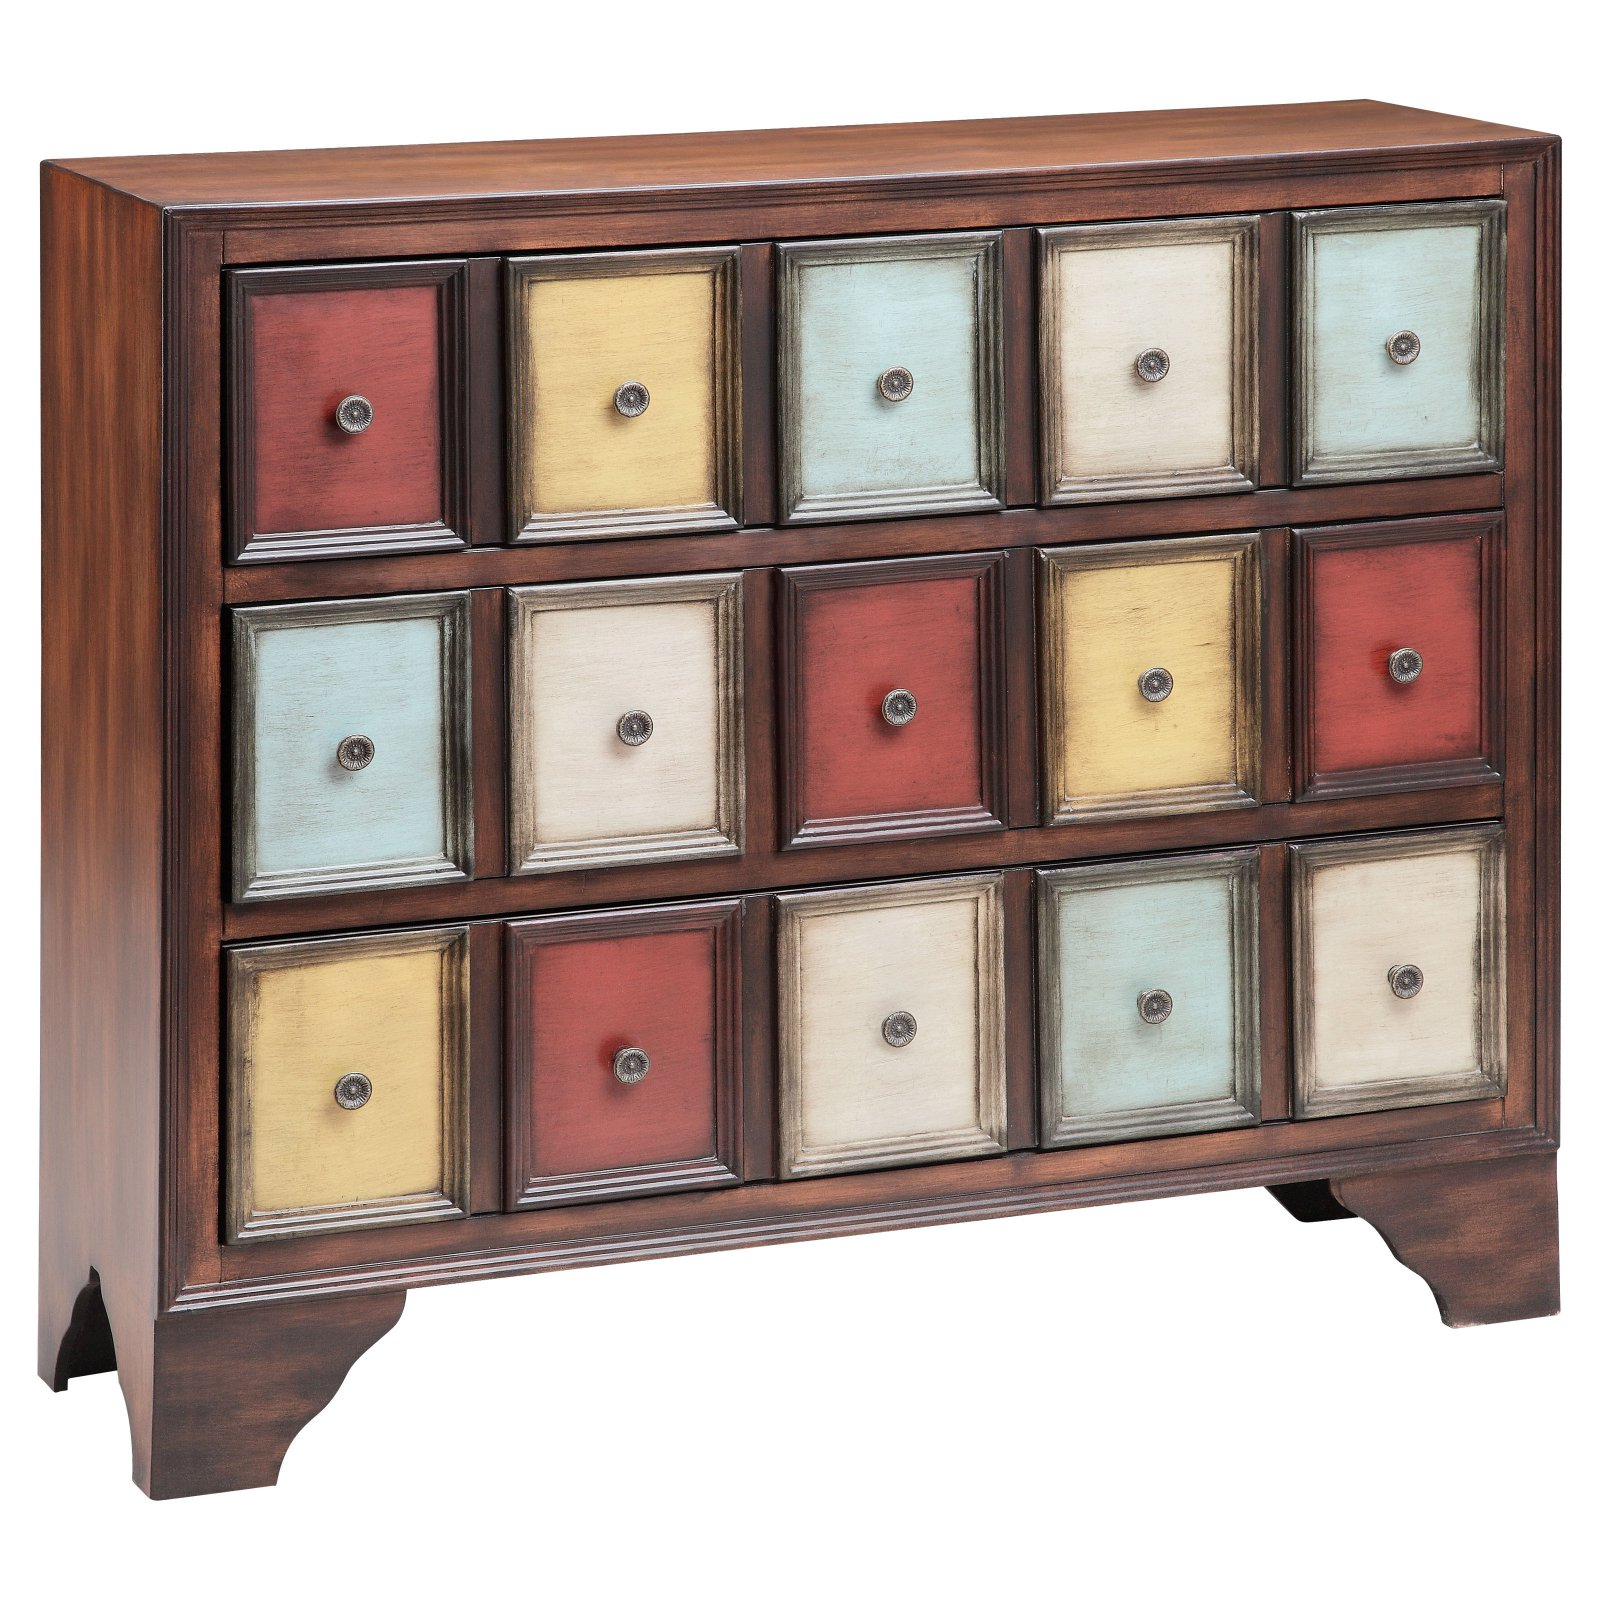 Stein World 12367 3-Drawer Multi-Color Chest